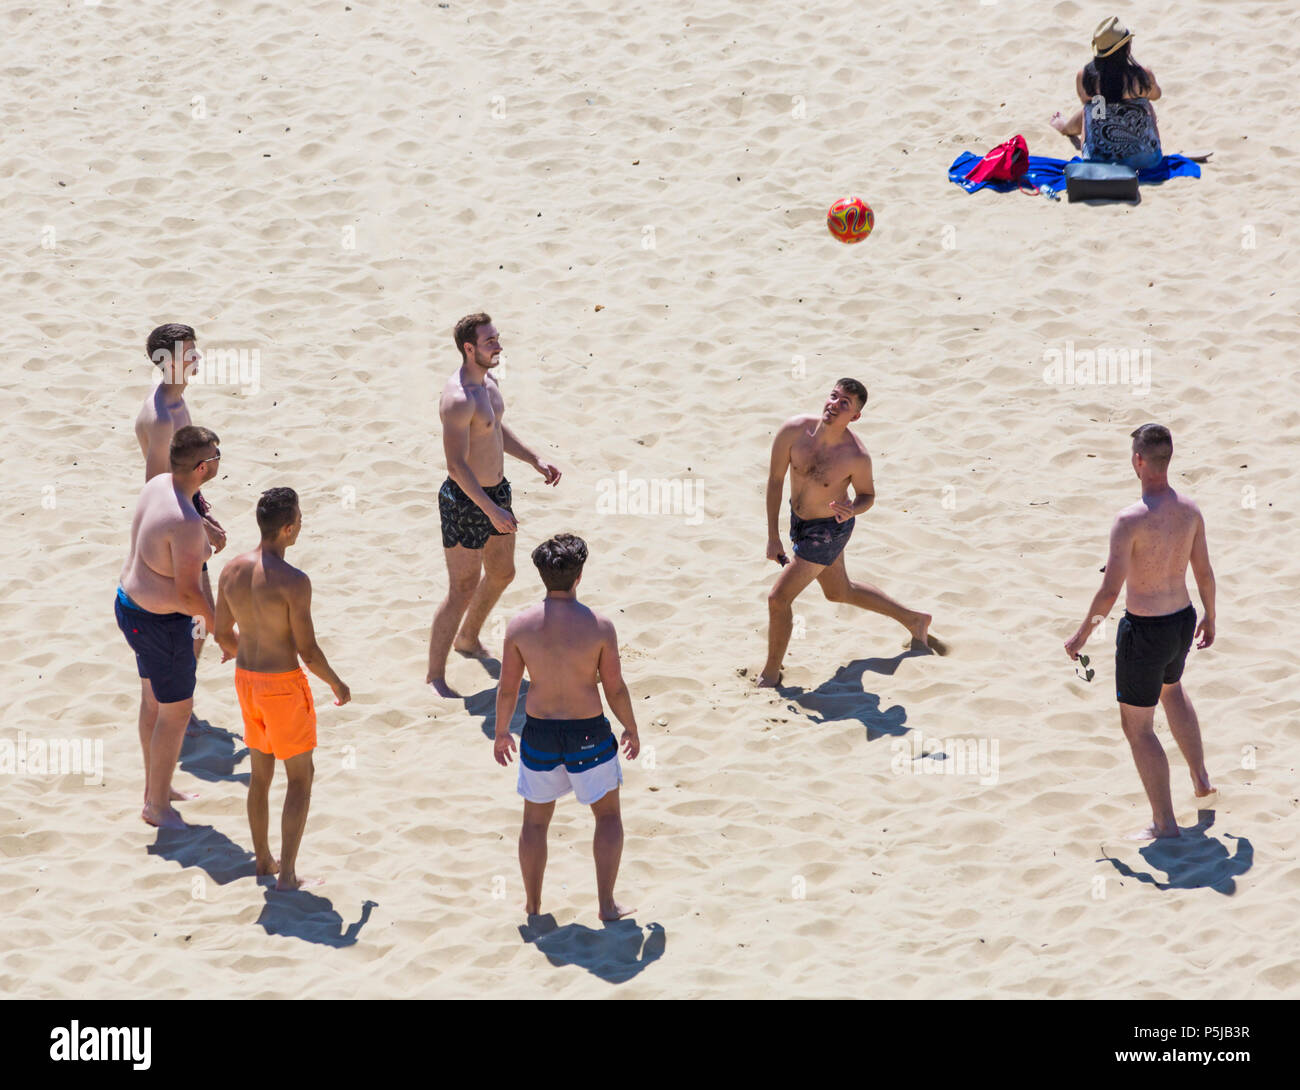 Bournemouth, Dorset, UK. 27th June 2018. UK weather: sunseekers head to the beaches at Bournemouth on another lovely warm sunny day with unbroken blue skies and sunshine. A nice cooling breeze today makes the heat more bearable. Footie on the beach. - Stock Image